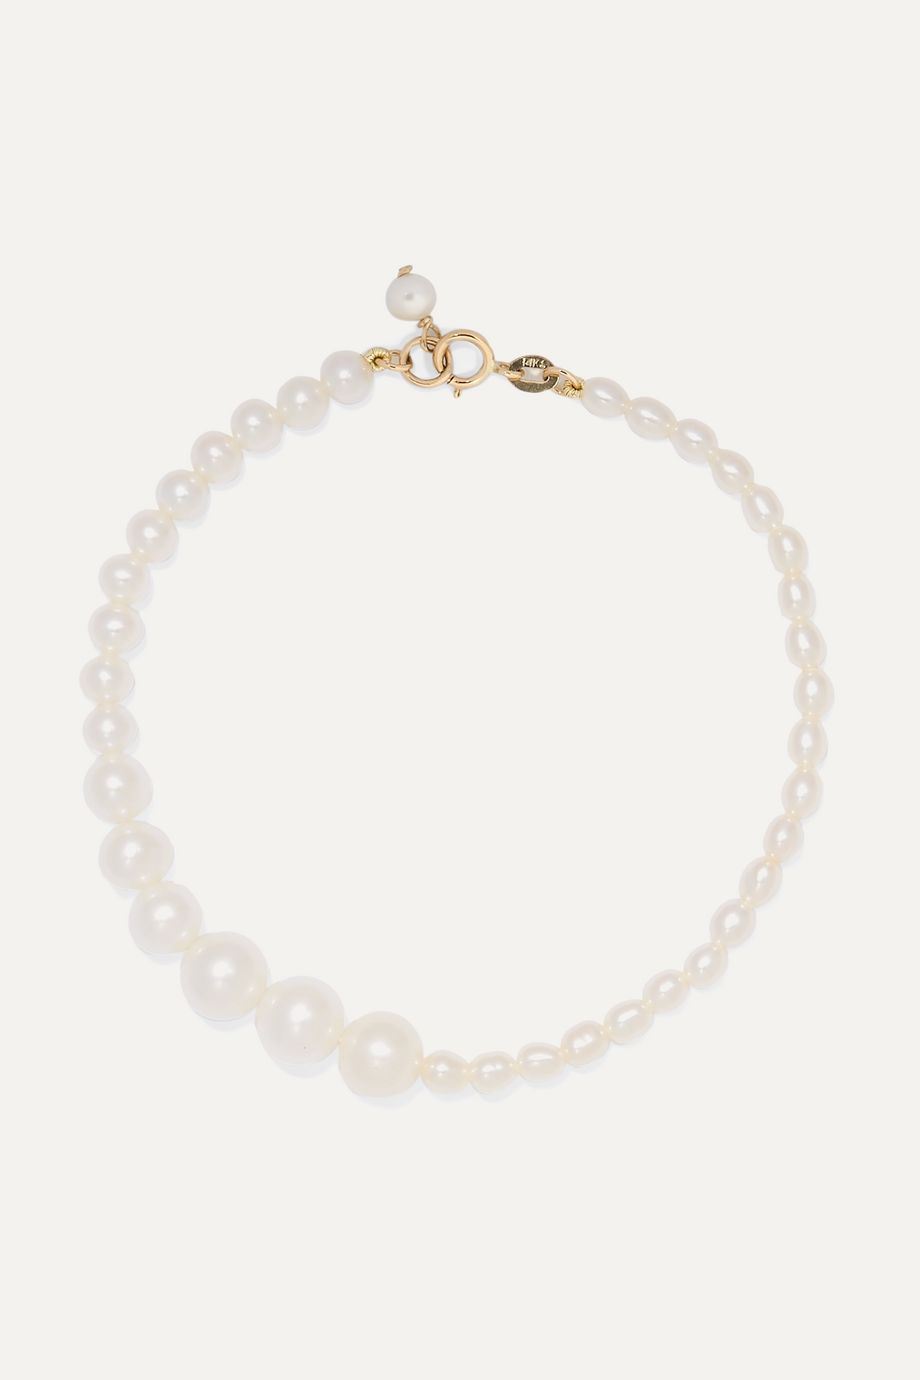 Poppy Finch Gold and pearl bracelet